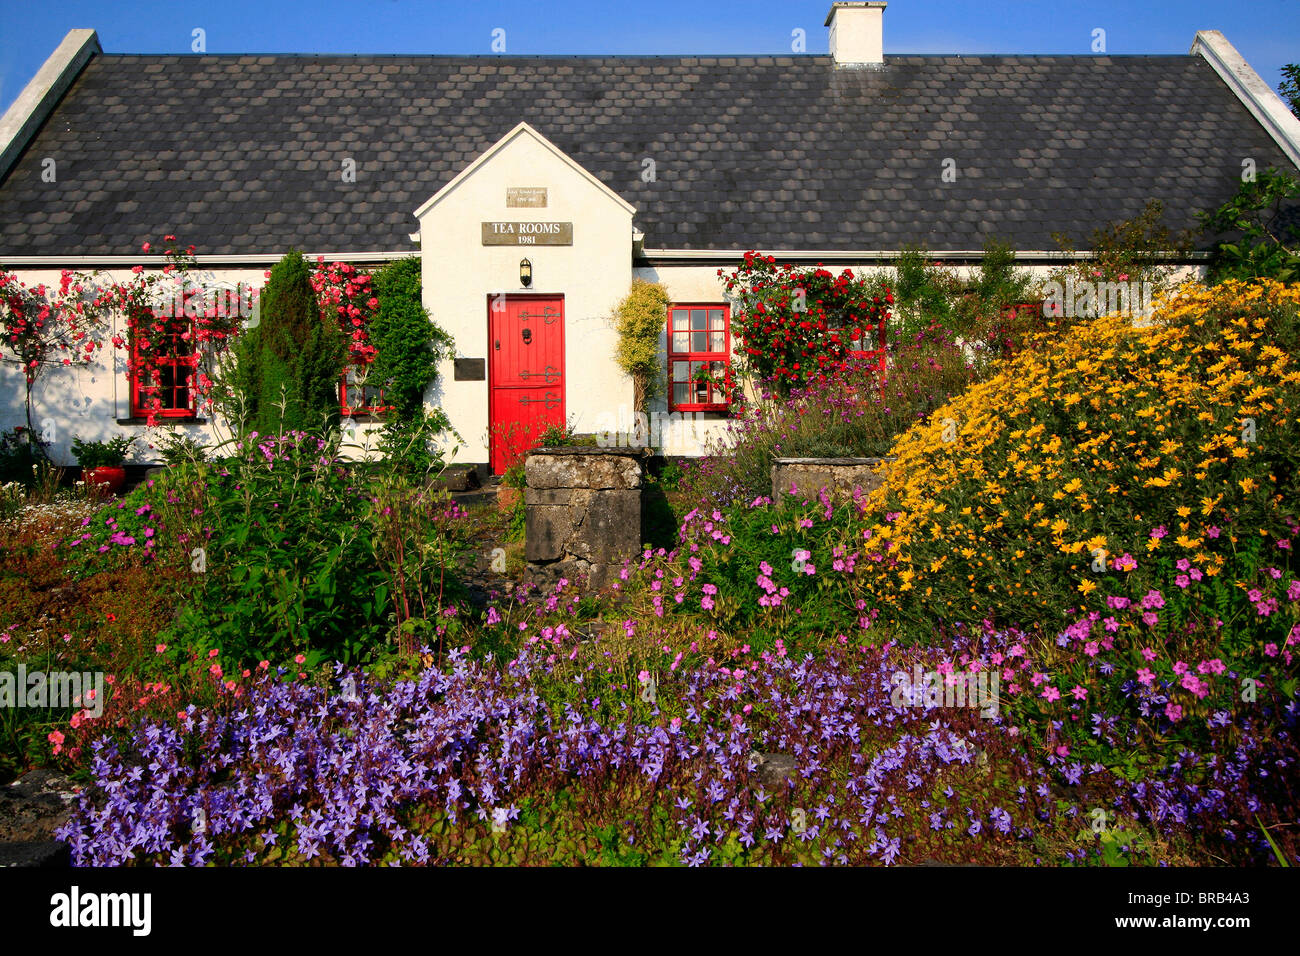 Ballyvaughan,Co Clare,Ireland;Tea Rooms In A Traditional Cottage,With Lush Flowers In Foreground - Stock Image